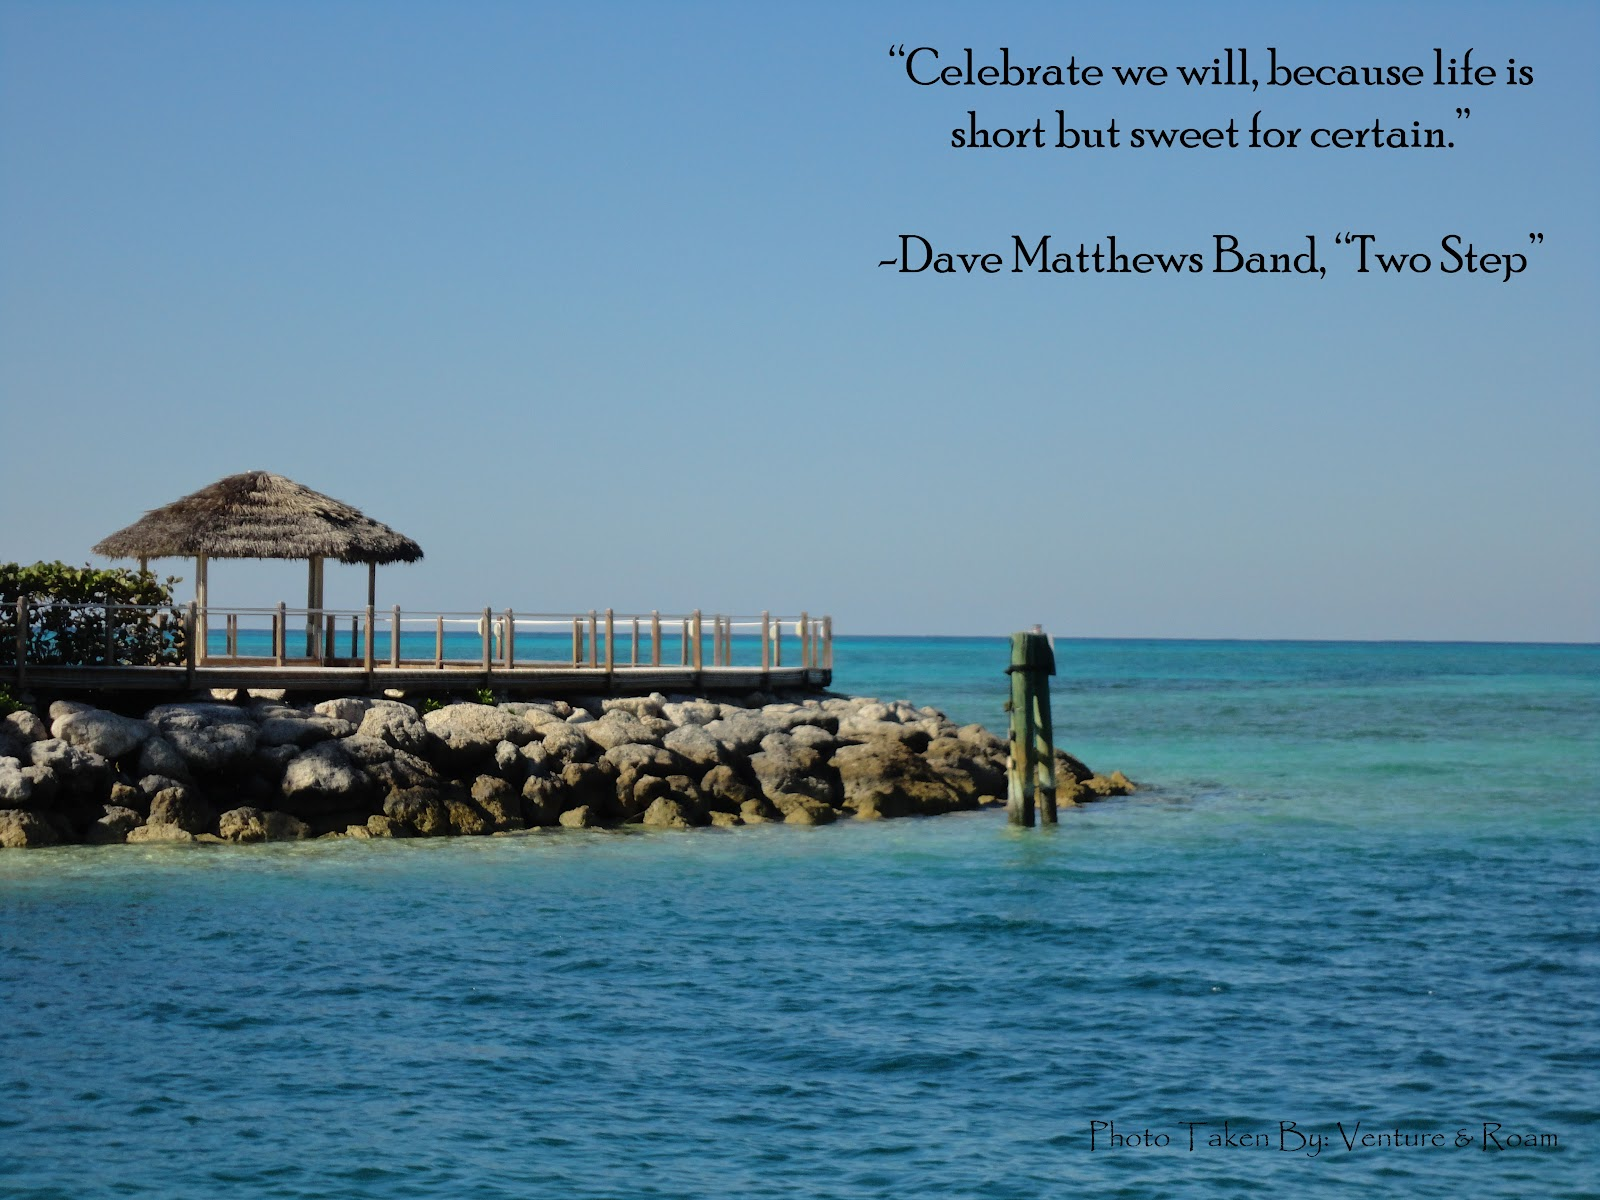 Dave Matthews Band Quotes. QuotesGram